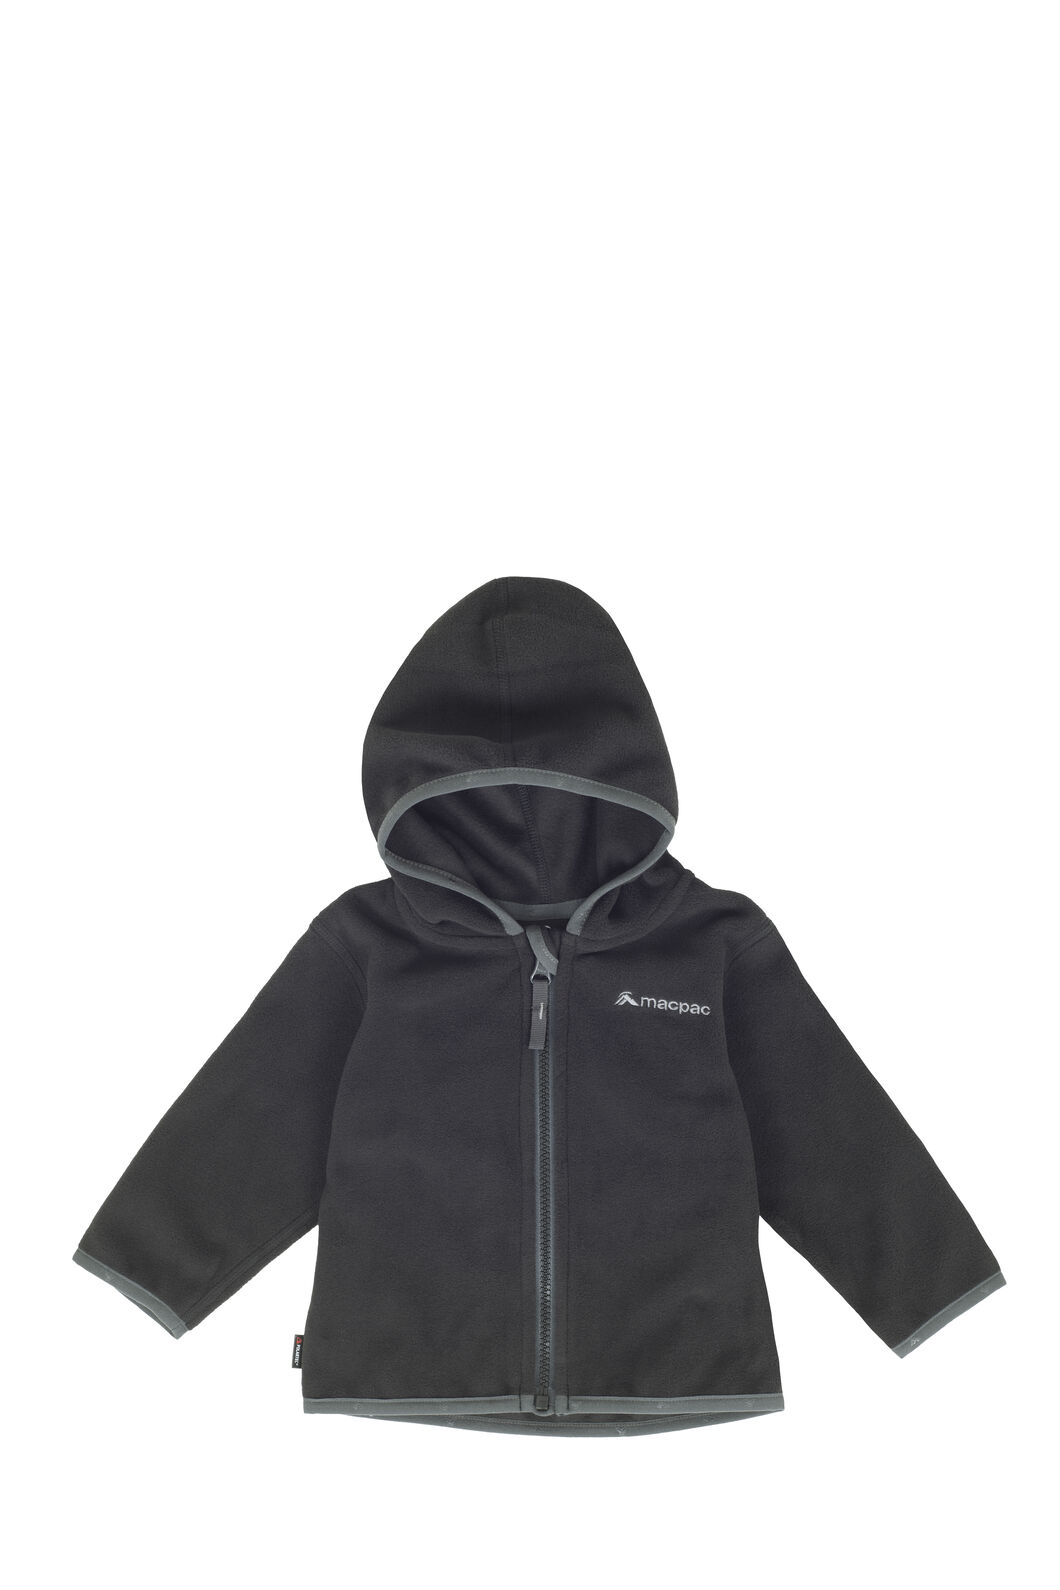 Macpac Mini Pepe Fleece Hoody - Baby, Black, hi-res